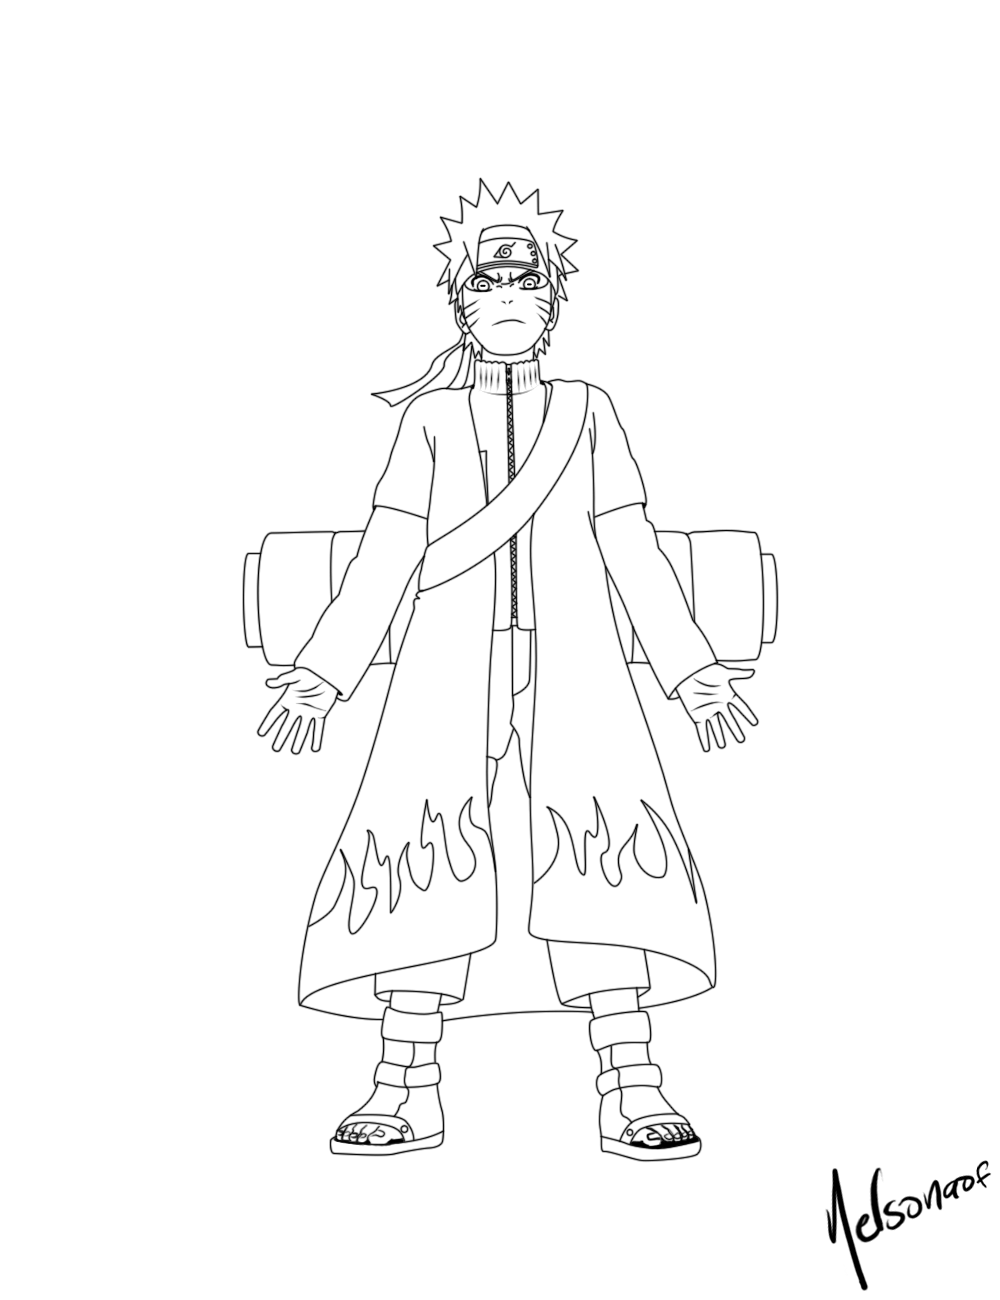 naruto coloring sheets naruto coloring pages coloring naruto sheets